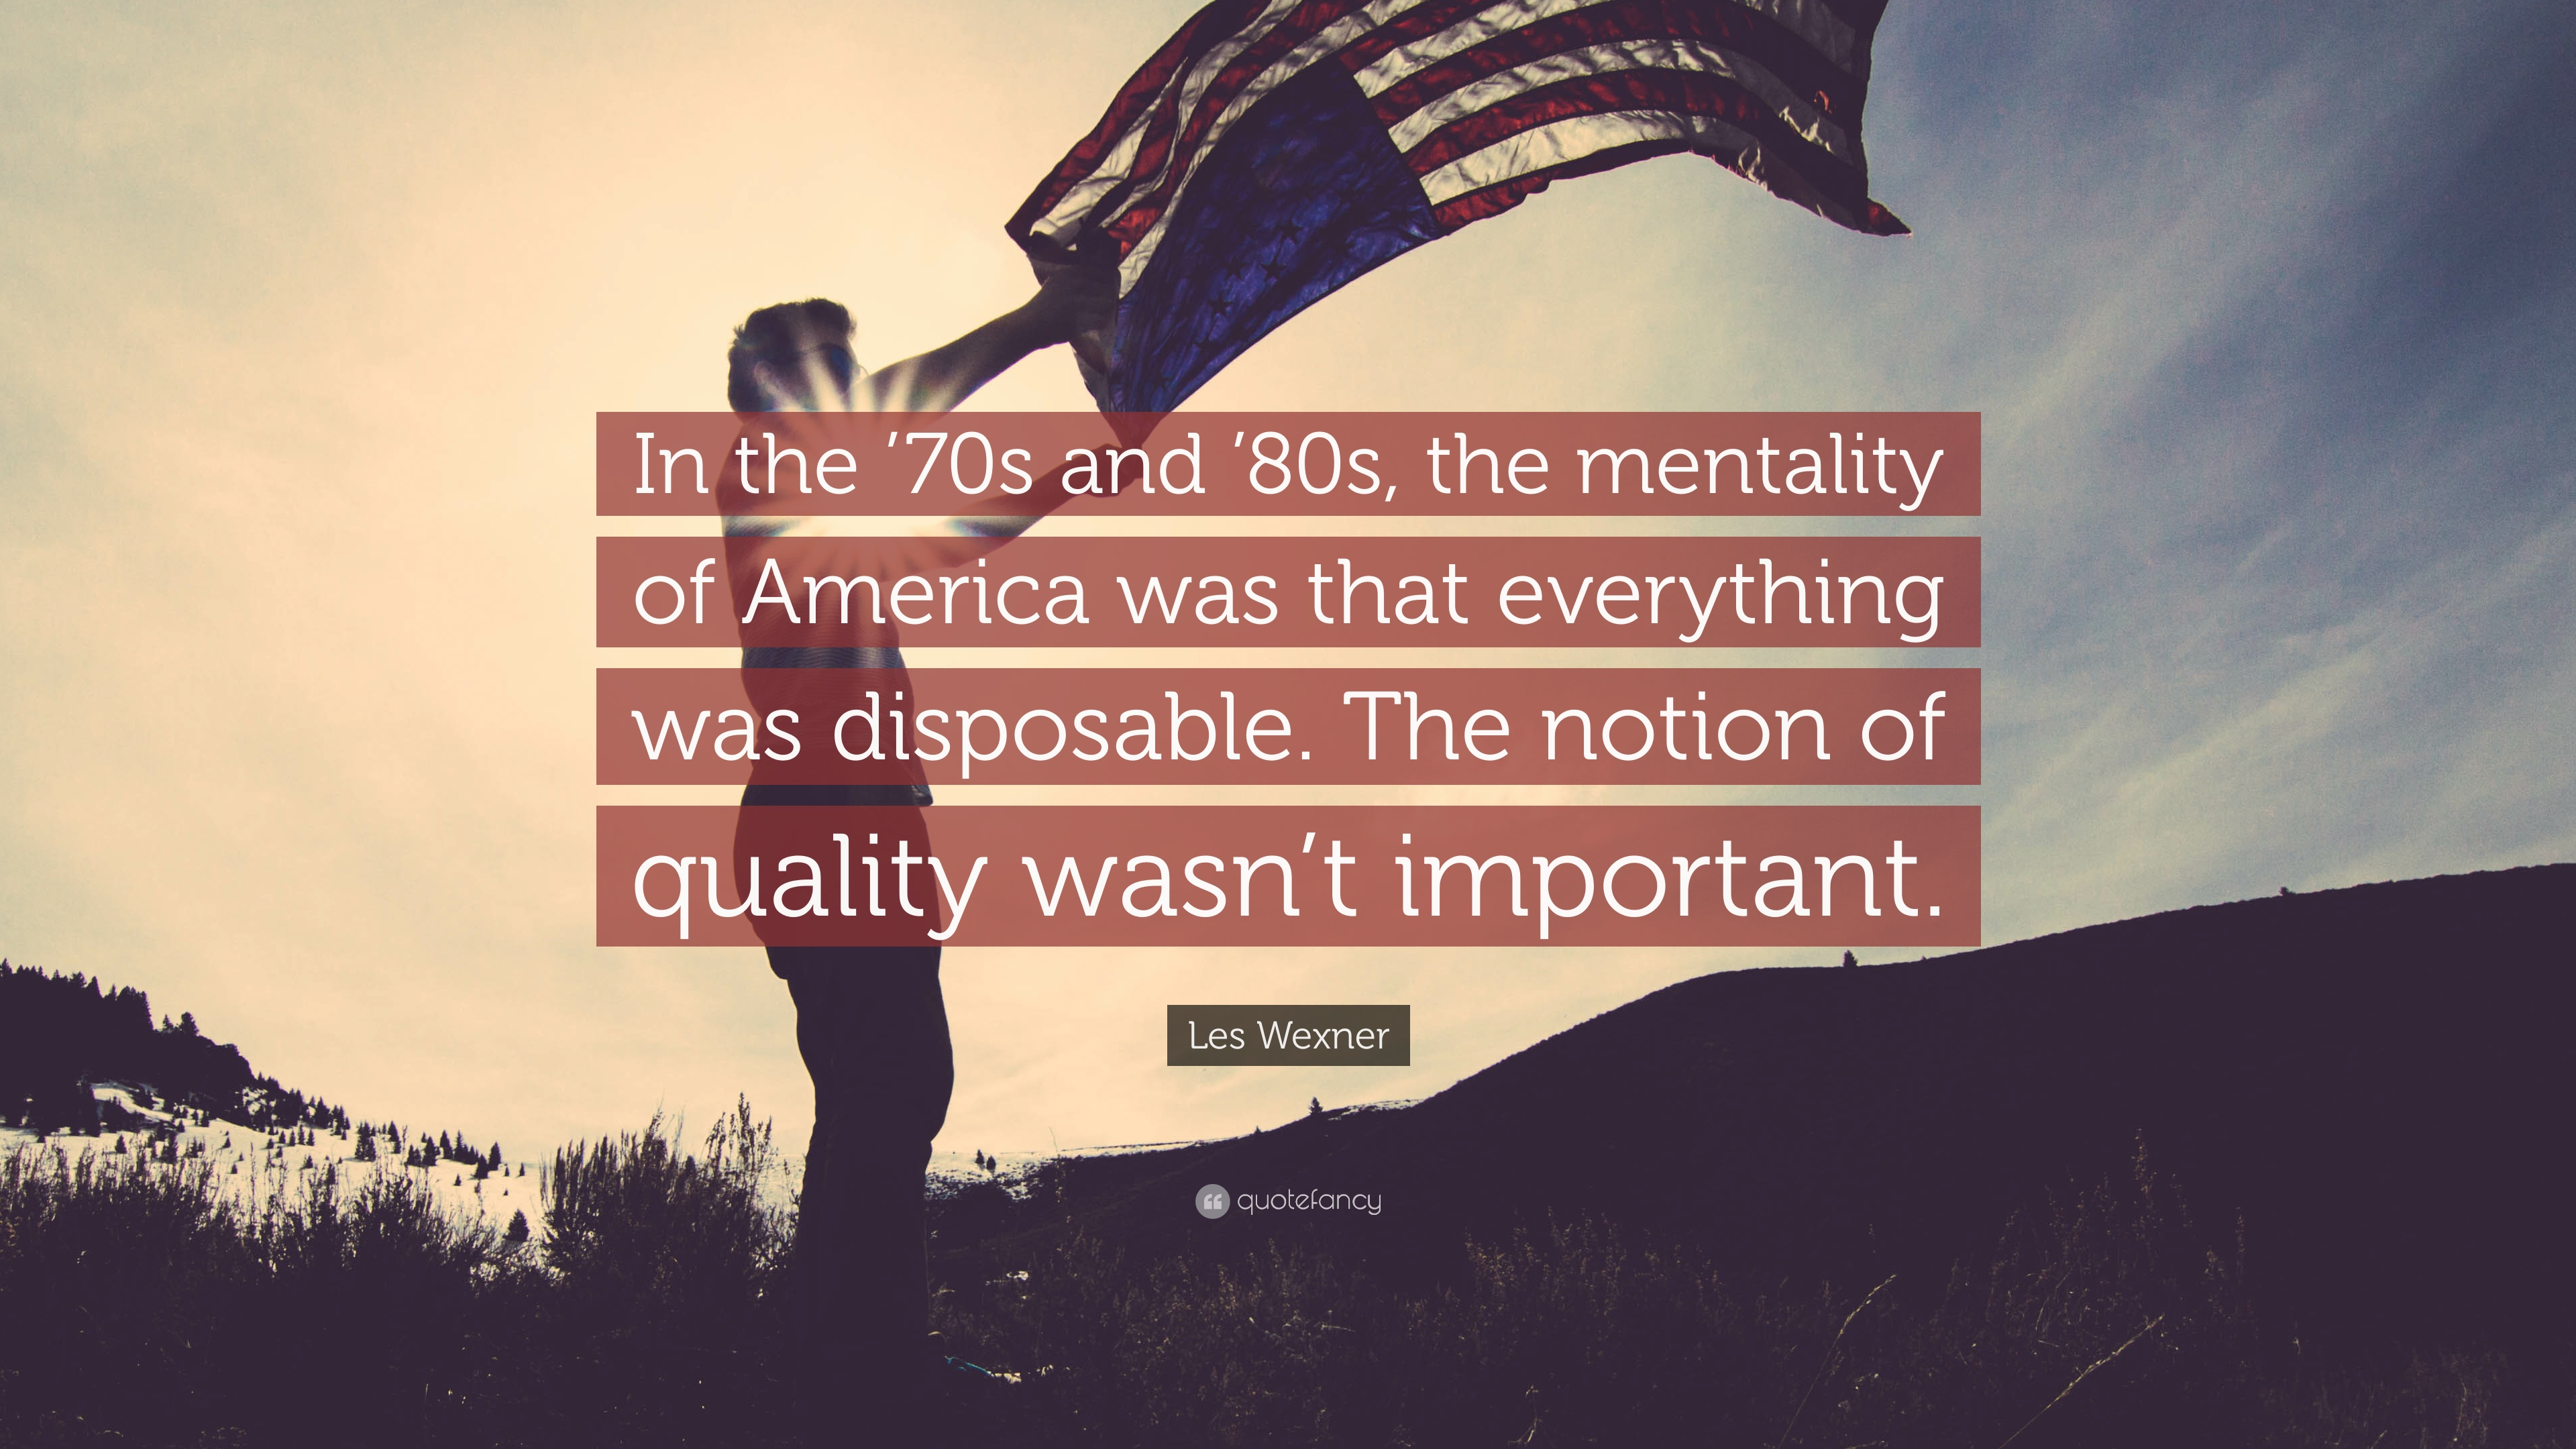 """Les Wexner Quote: """"In the '70s and '80s, the mentality of America ..."""